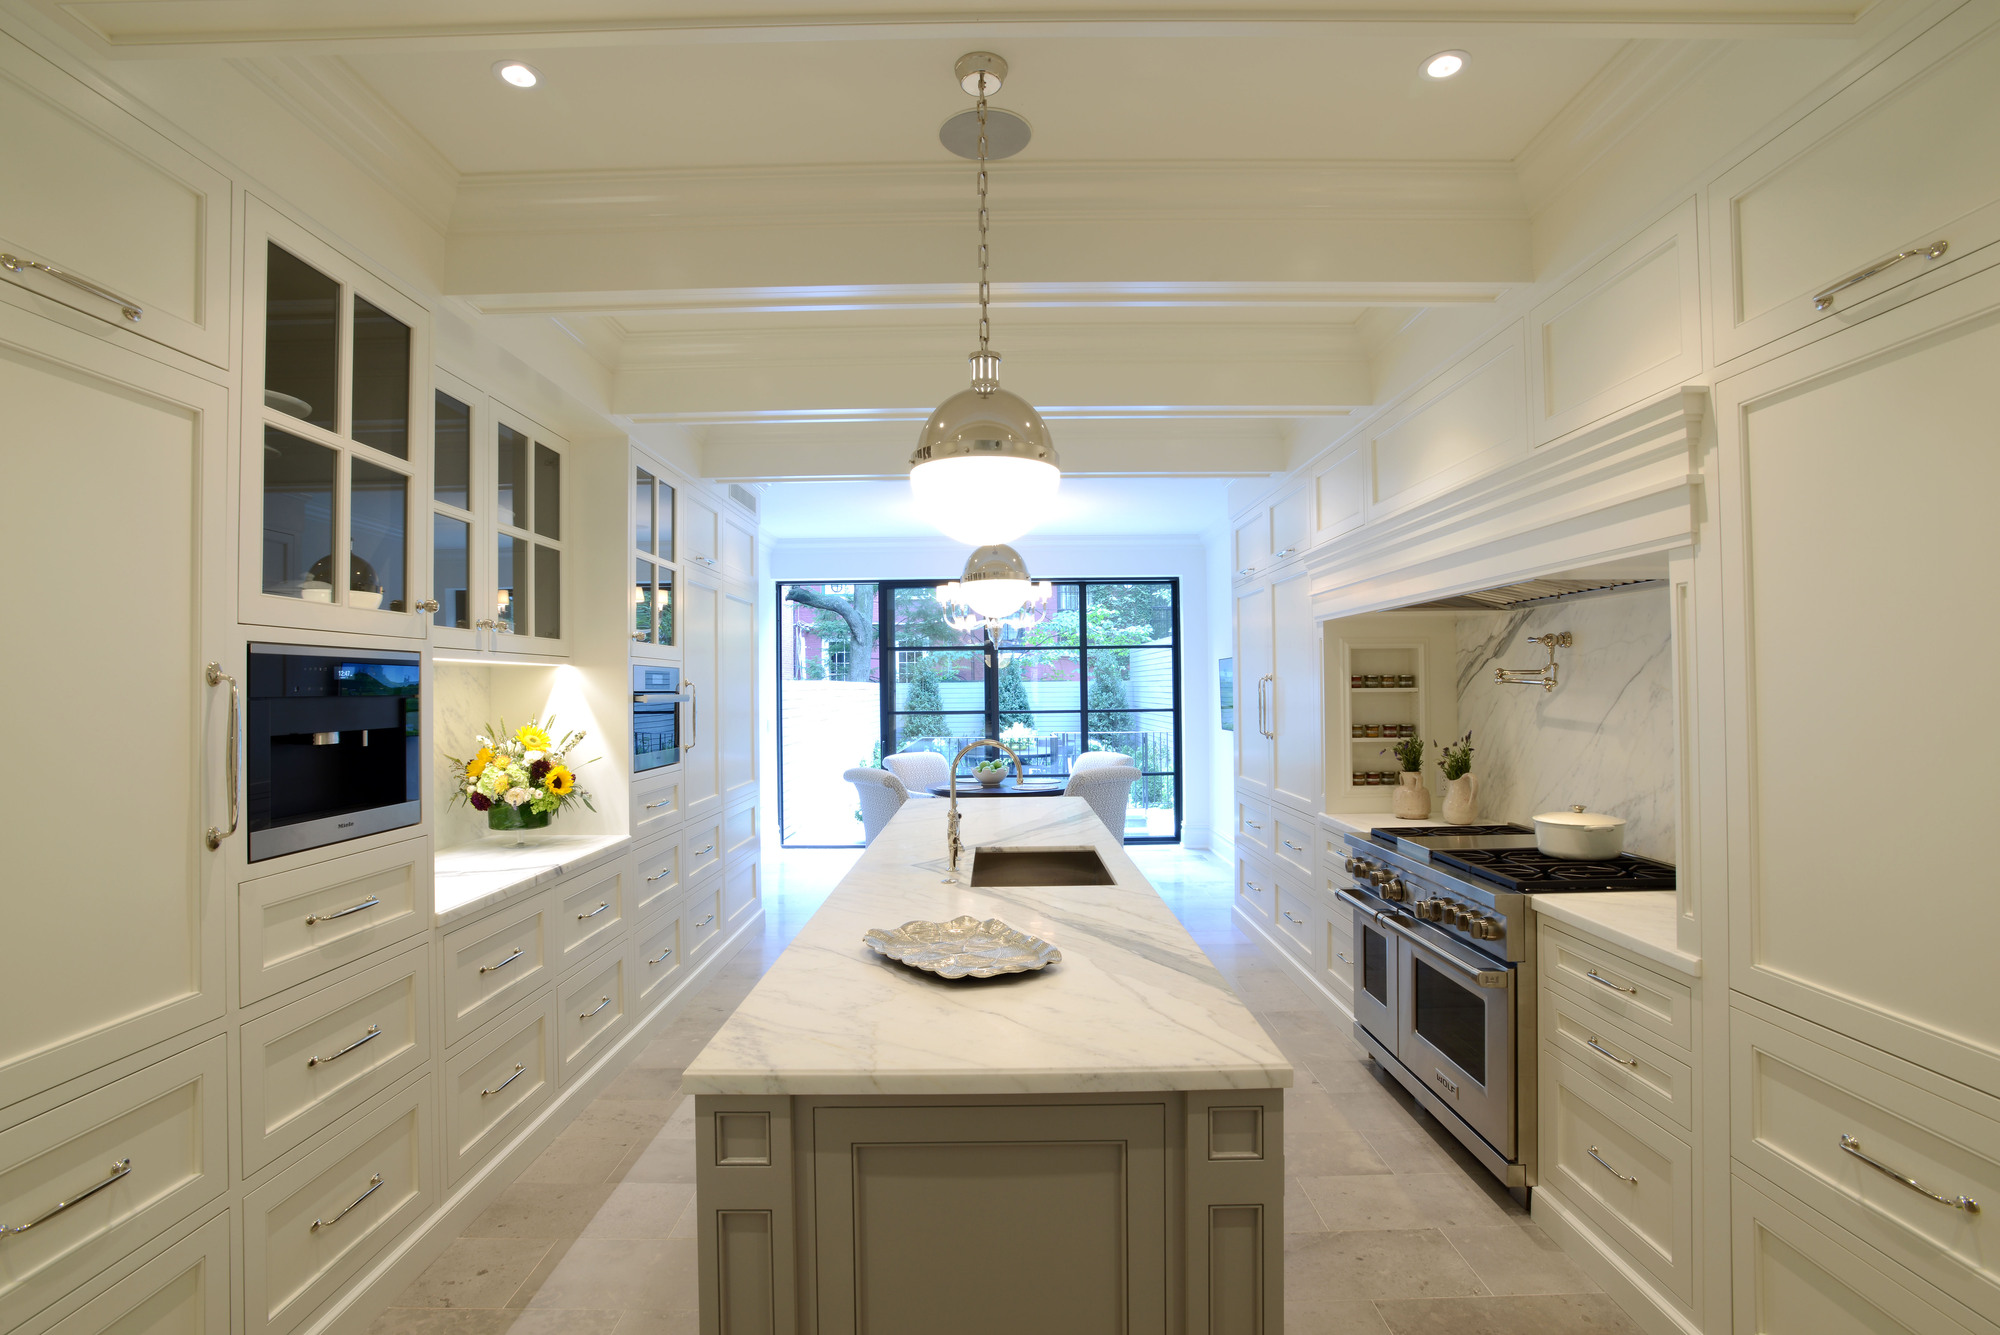 Uncategorized Kitchen Design Contest the worlds most prominent kitchen design contest is now accepting designed by william suk aia group llp